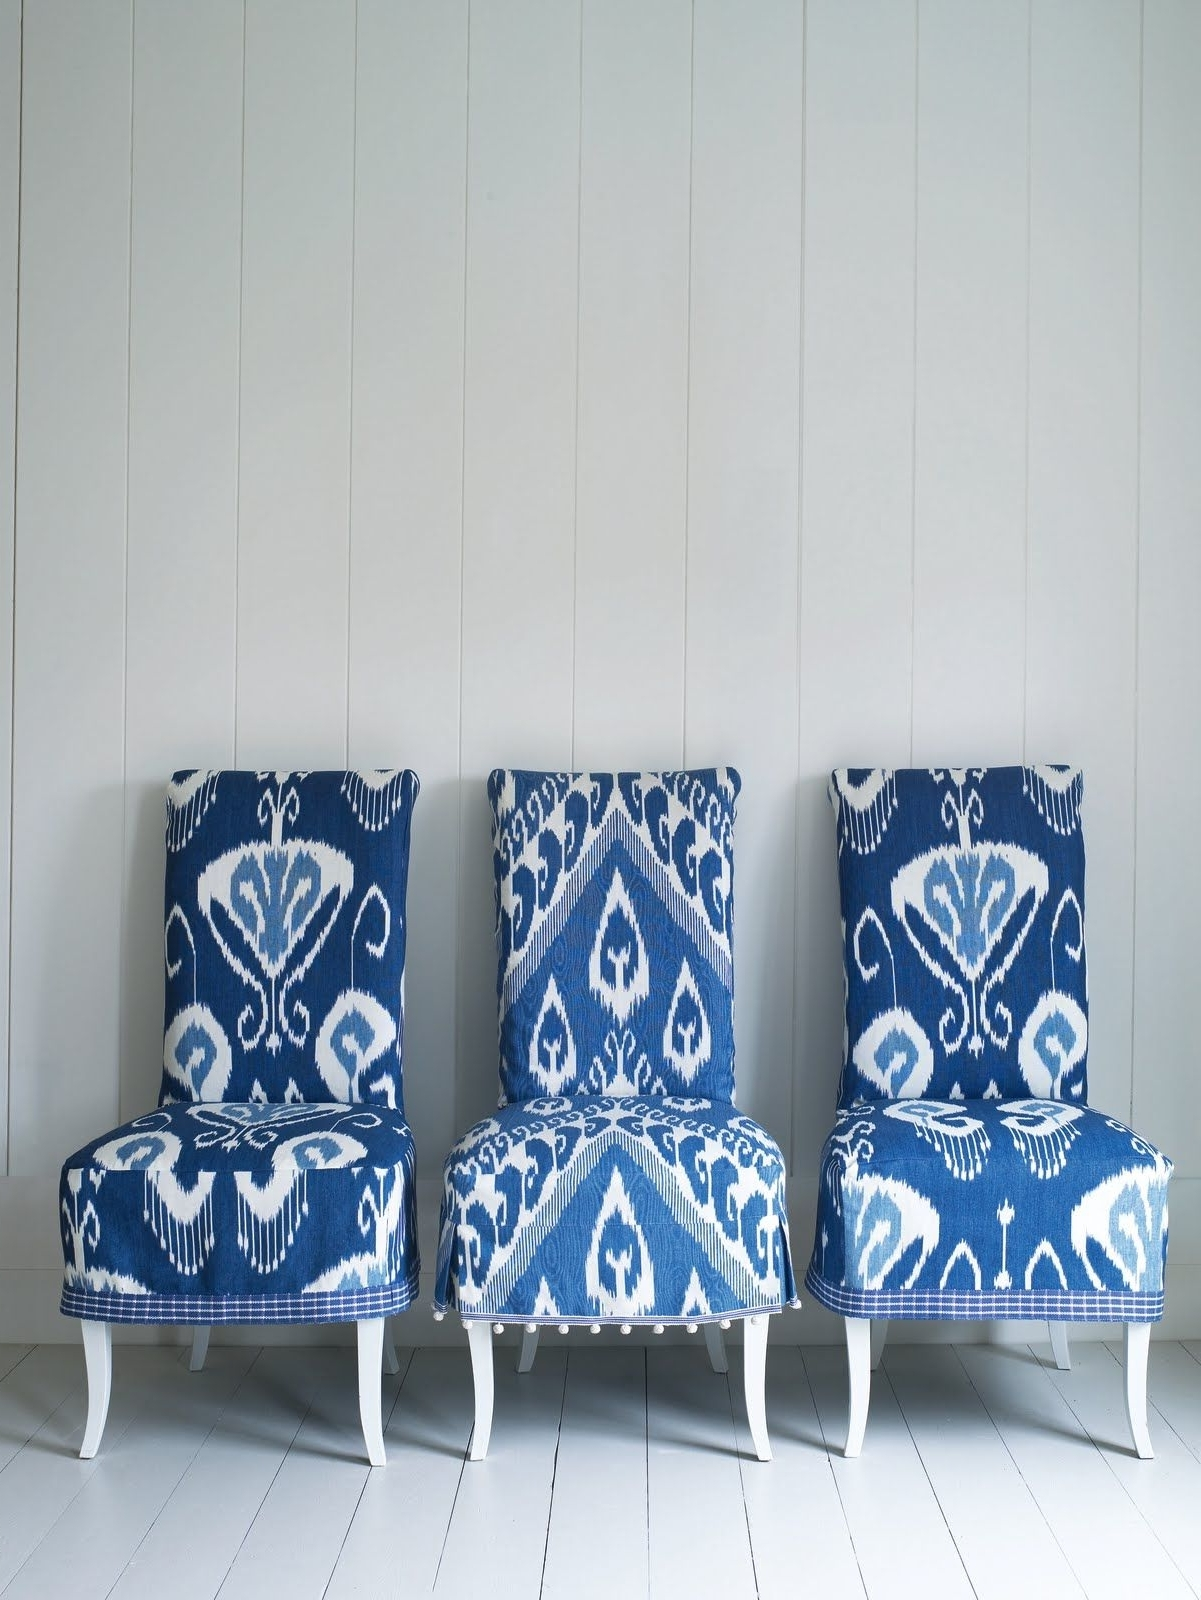 Widely Used Dining Chairs With Blue Loose Seat Within Blue And White Ikat Chairs, Via Interiors Nut (View 20 of 20)